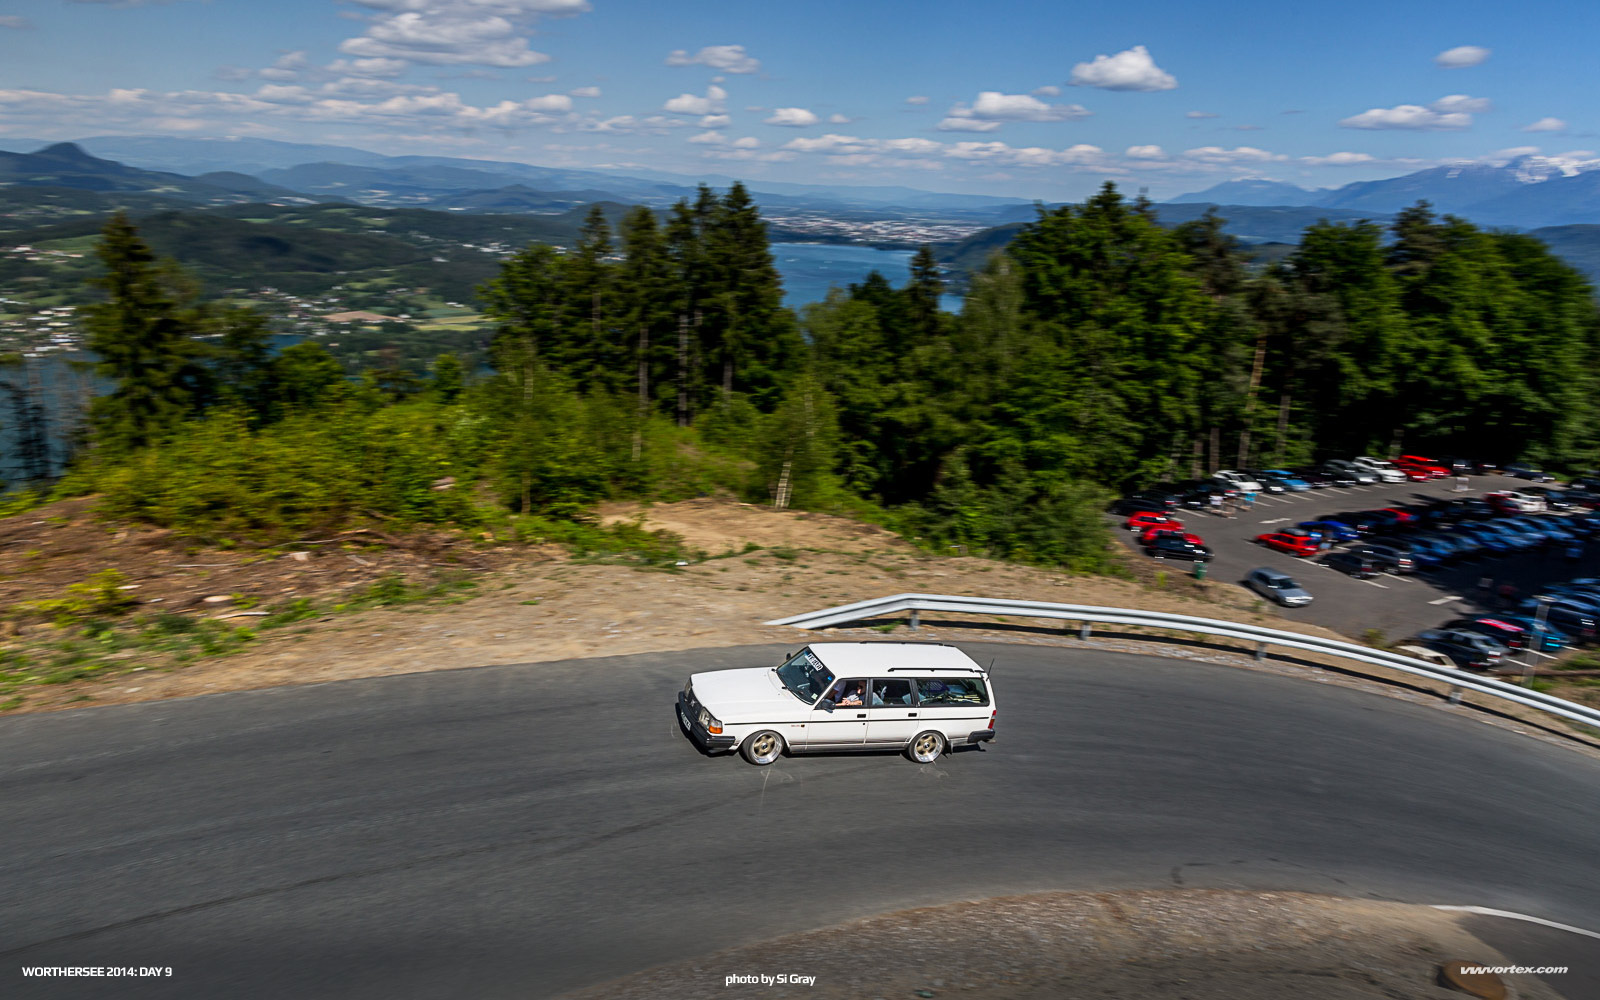 2014-Worthersee-Day-9-Si-Gray-417